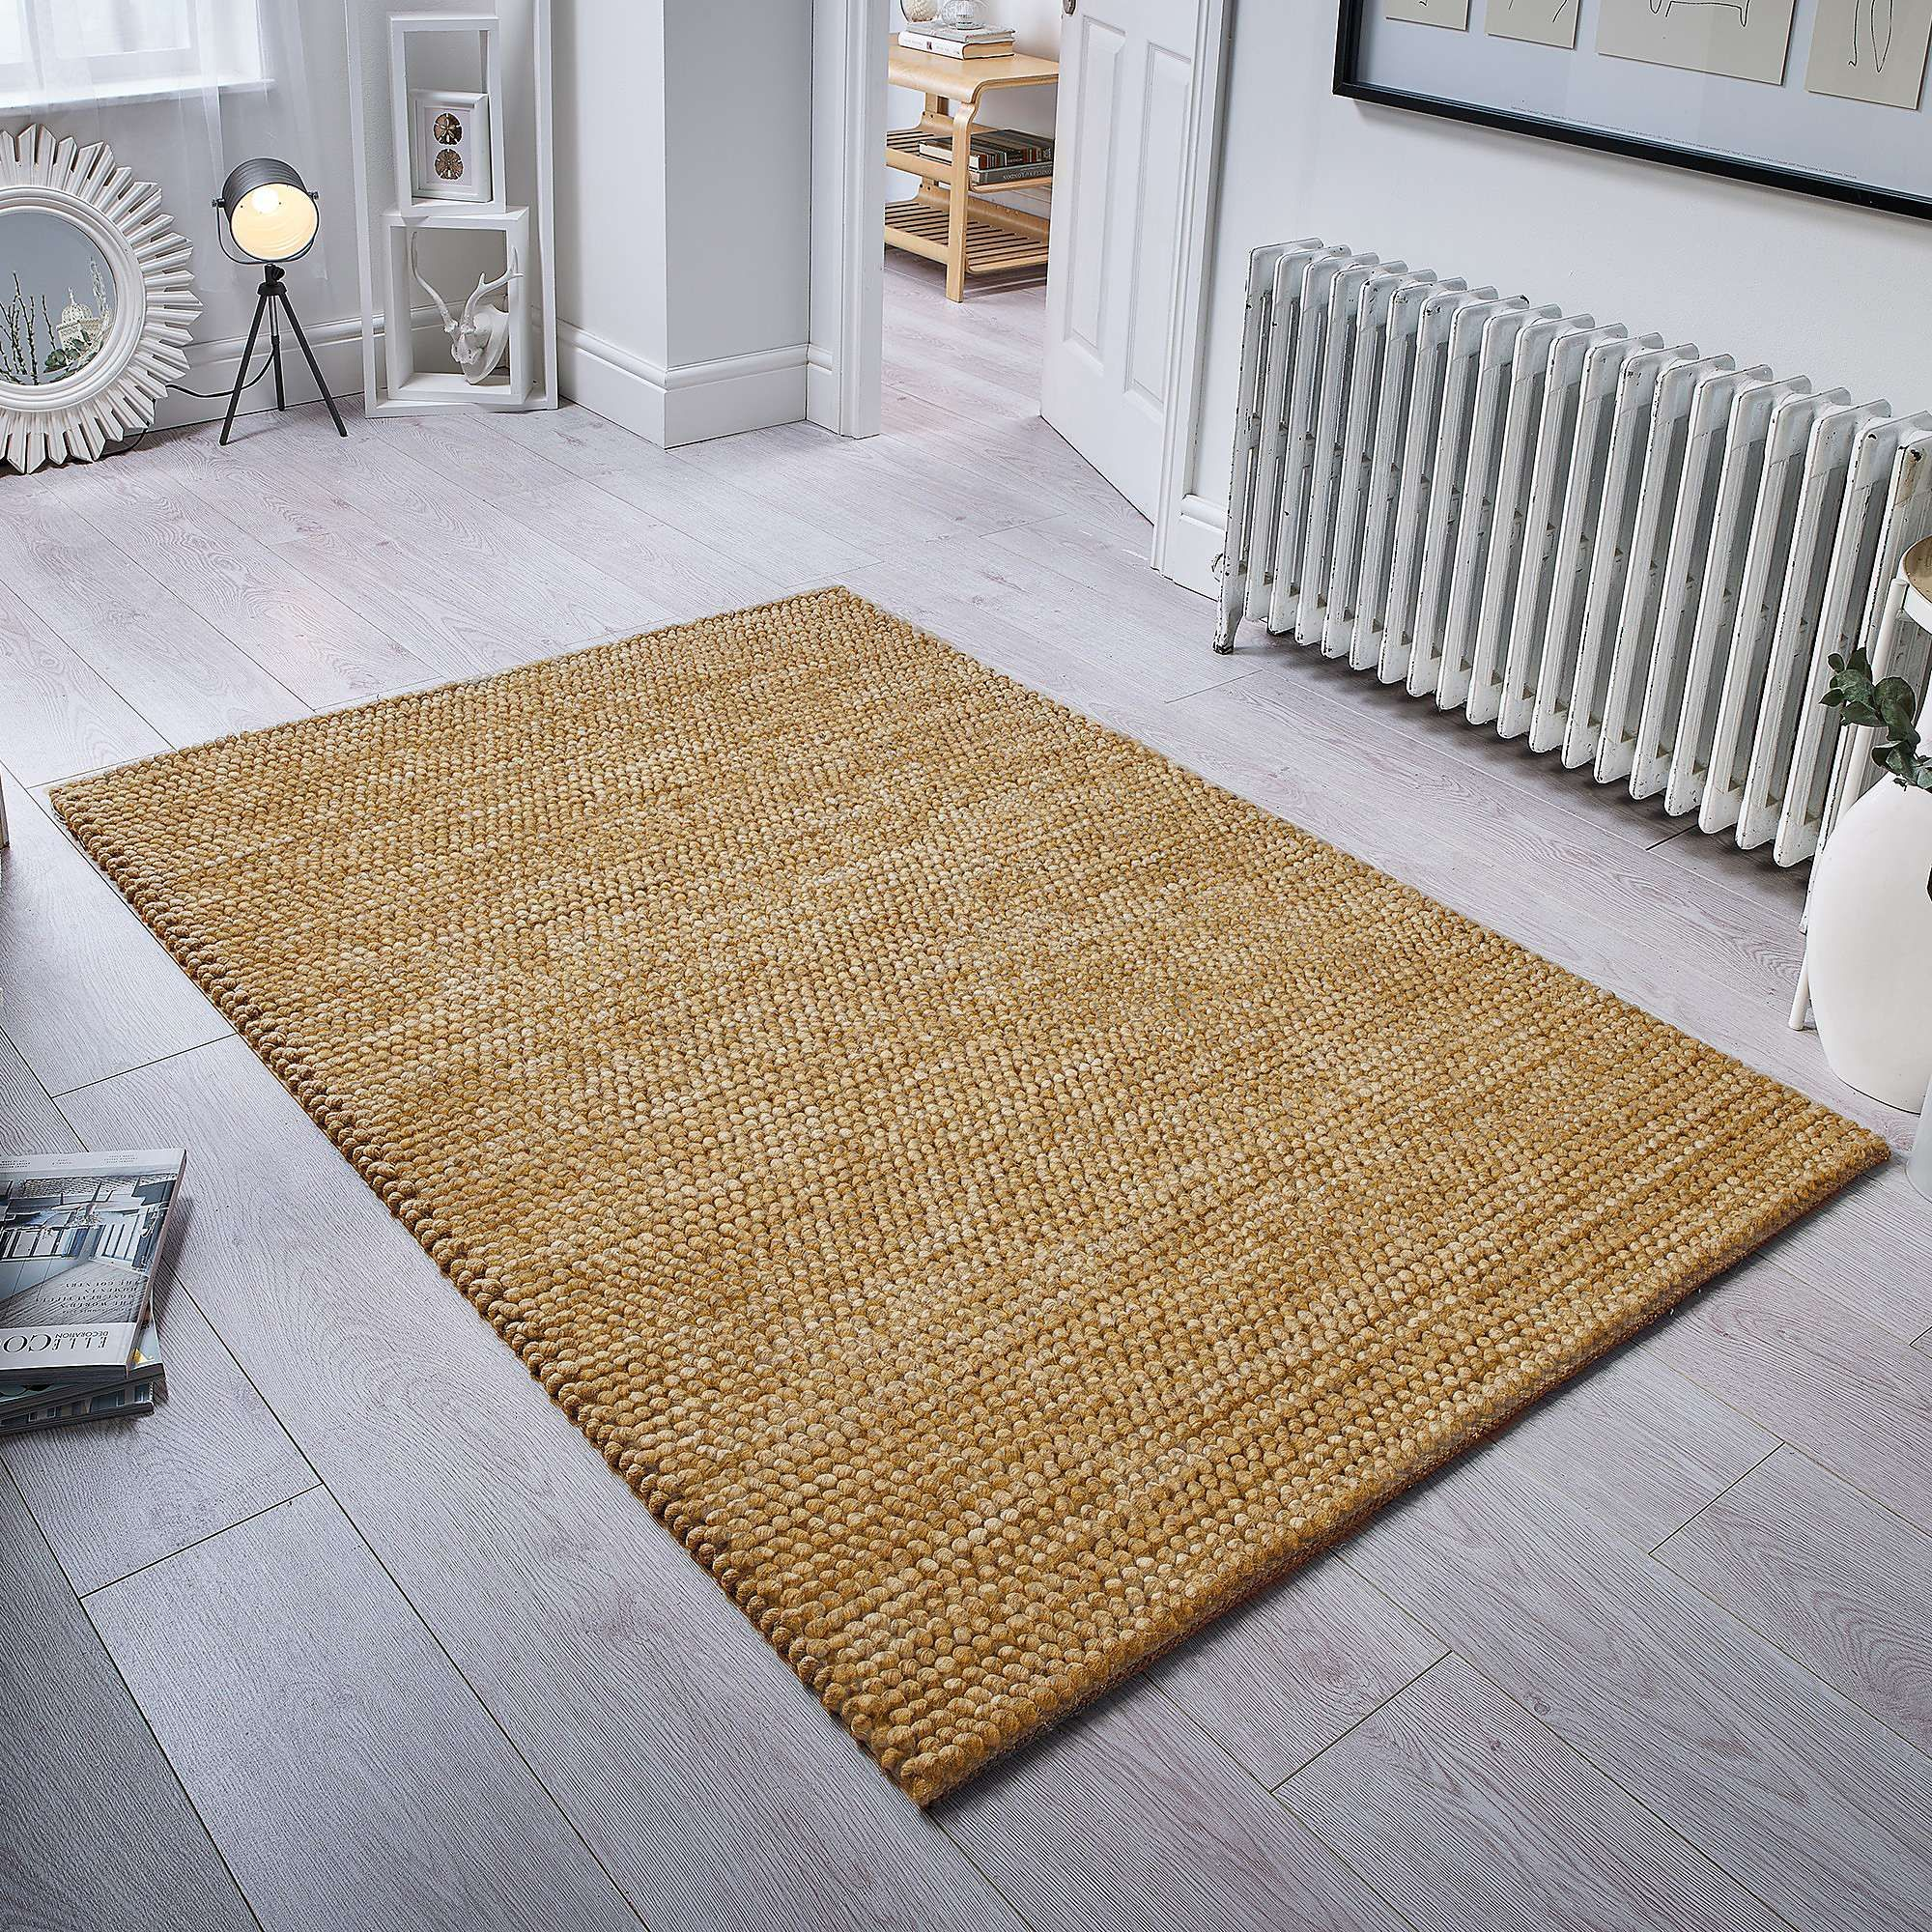 Pebble Wool Rug Dunelm With Images